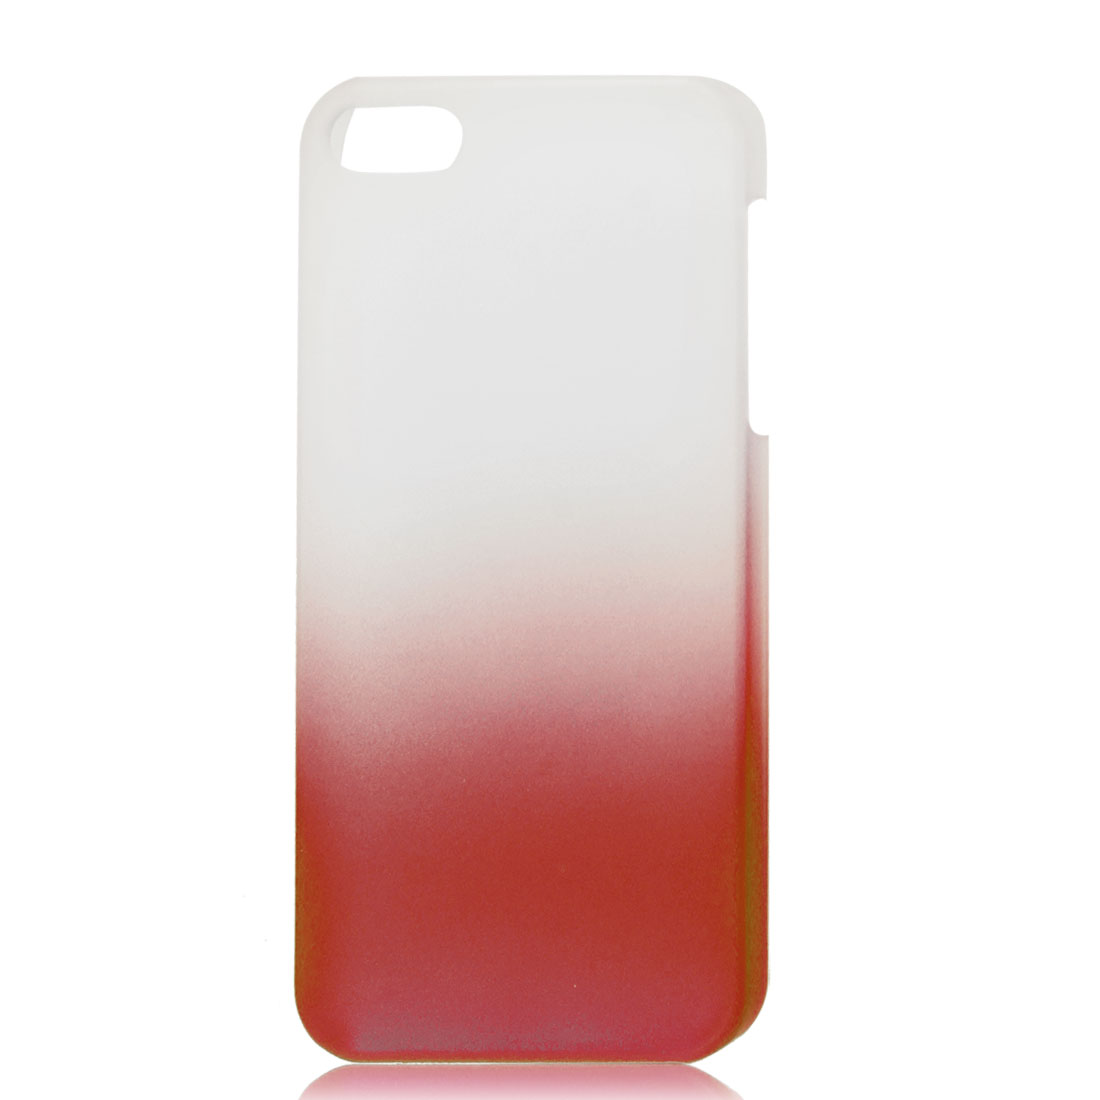 Gradient Red Translucent Hard Plastic Protective Case Cover for iPhone 5 5G